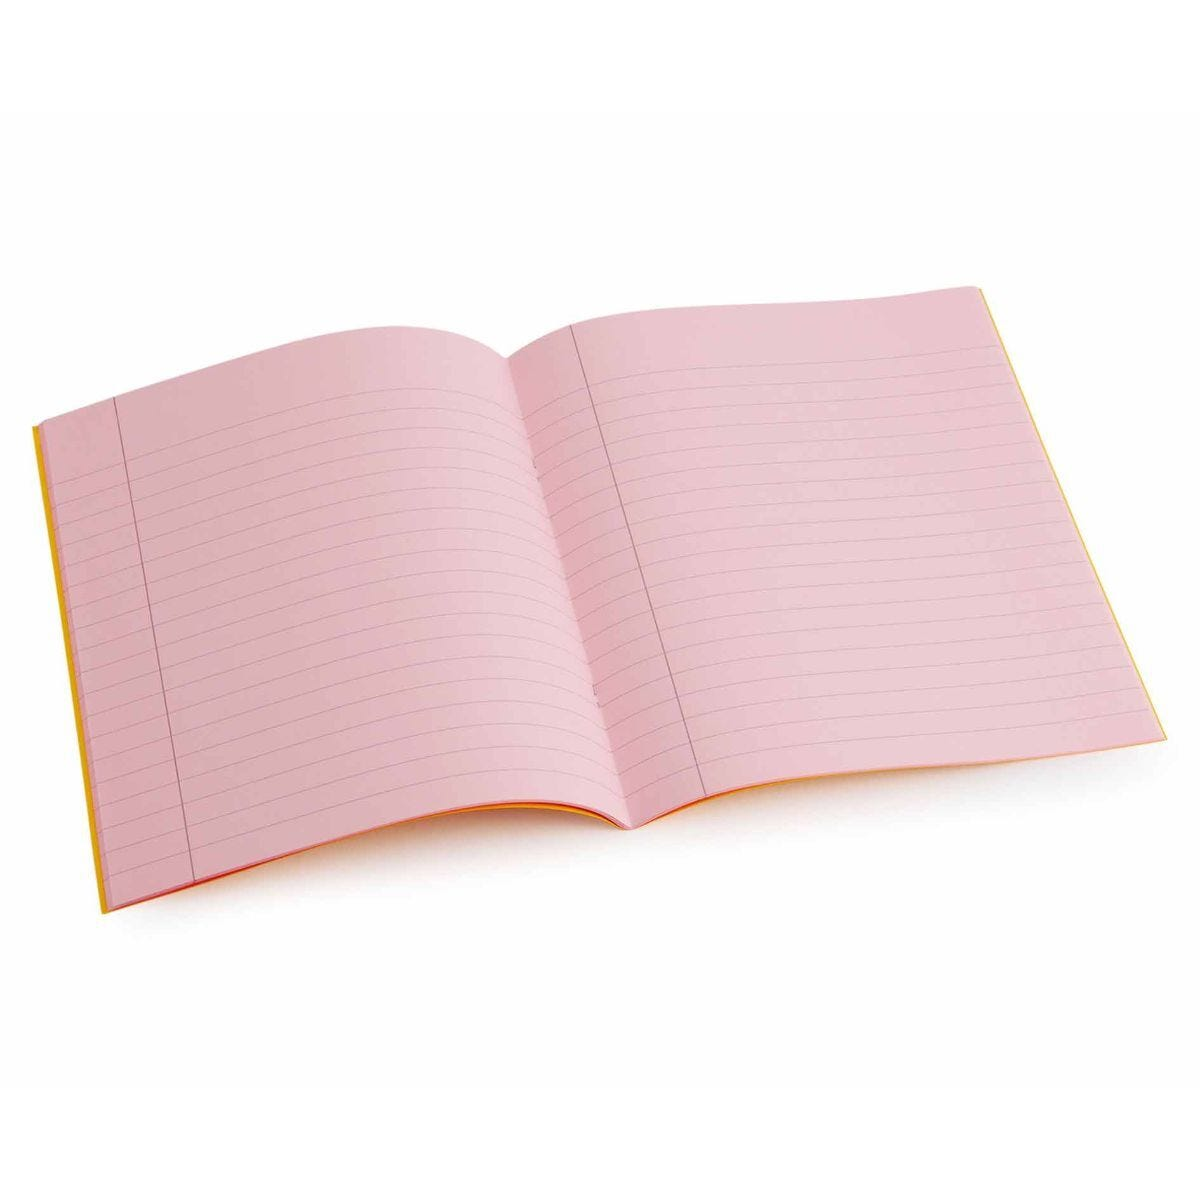 Tinted Exercise Book Standard 7x9 Lined 10mm Rose